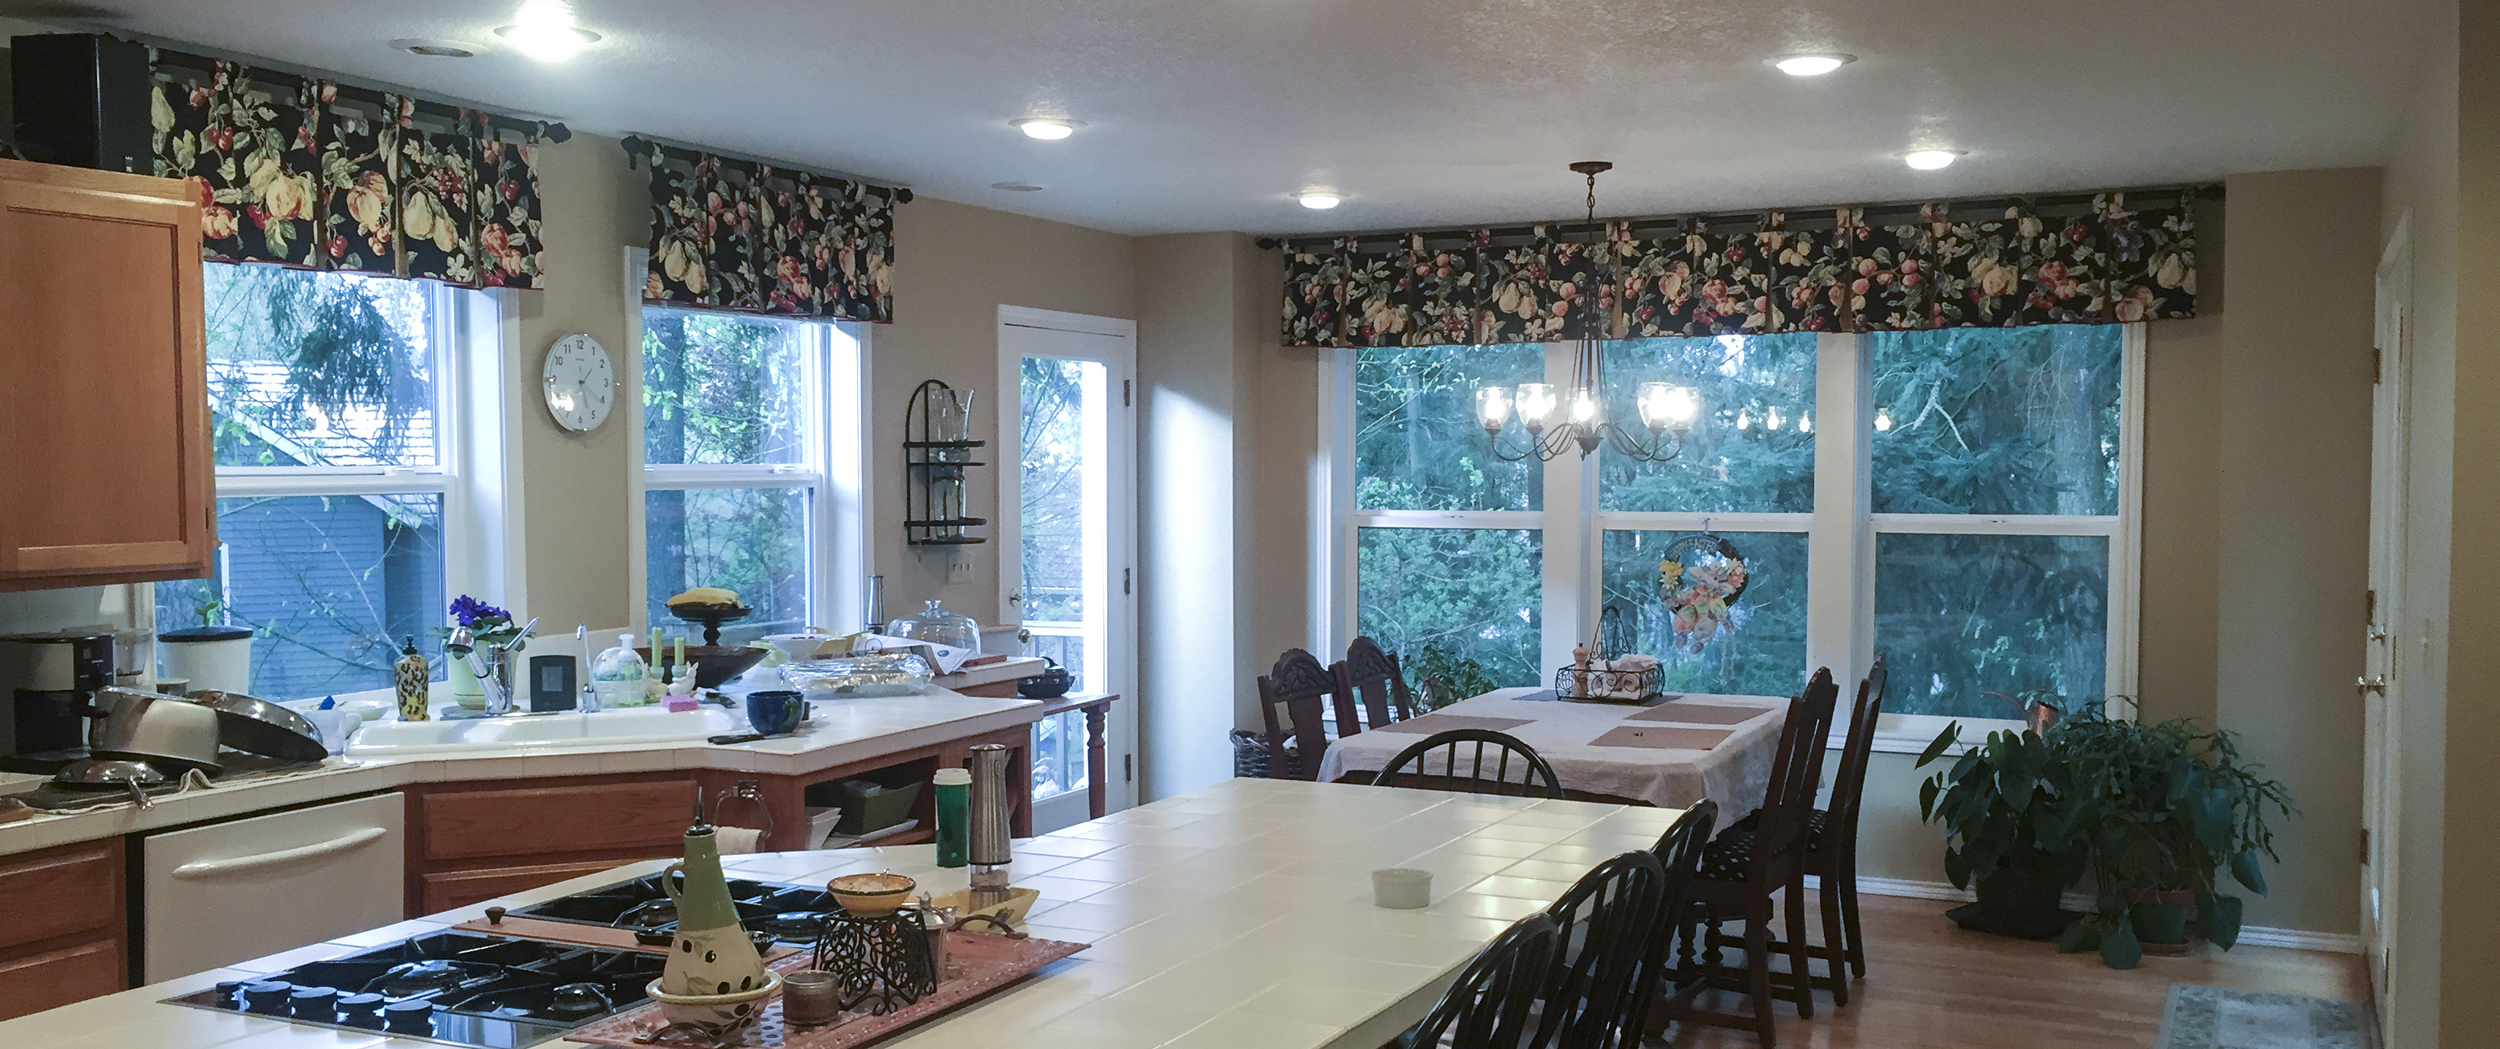 The final color, Macadamia, tied in with the curtains, wood cabinets and floors to provide a warming neutral to the room.